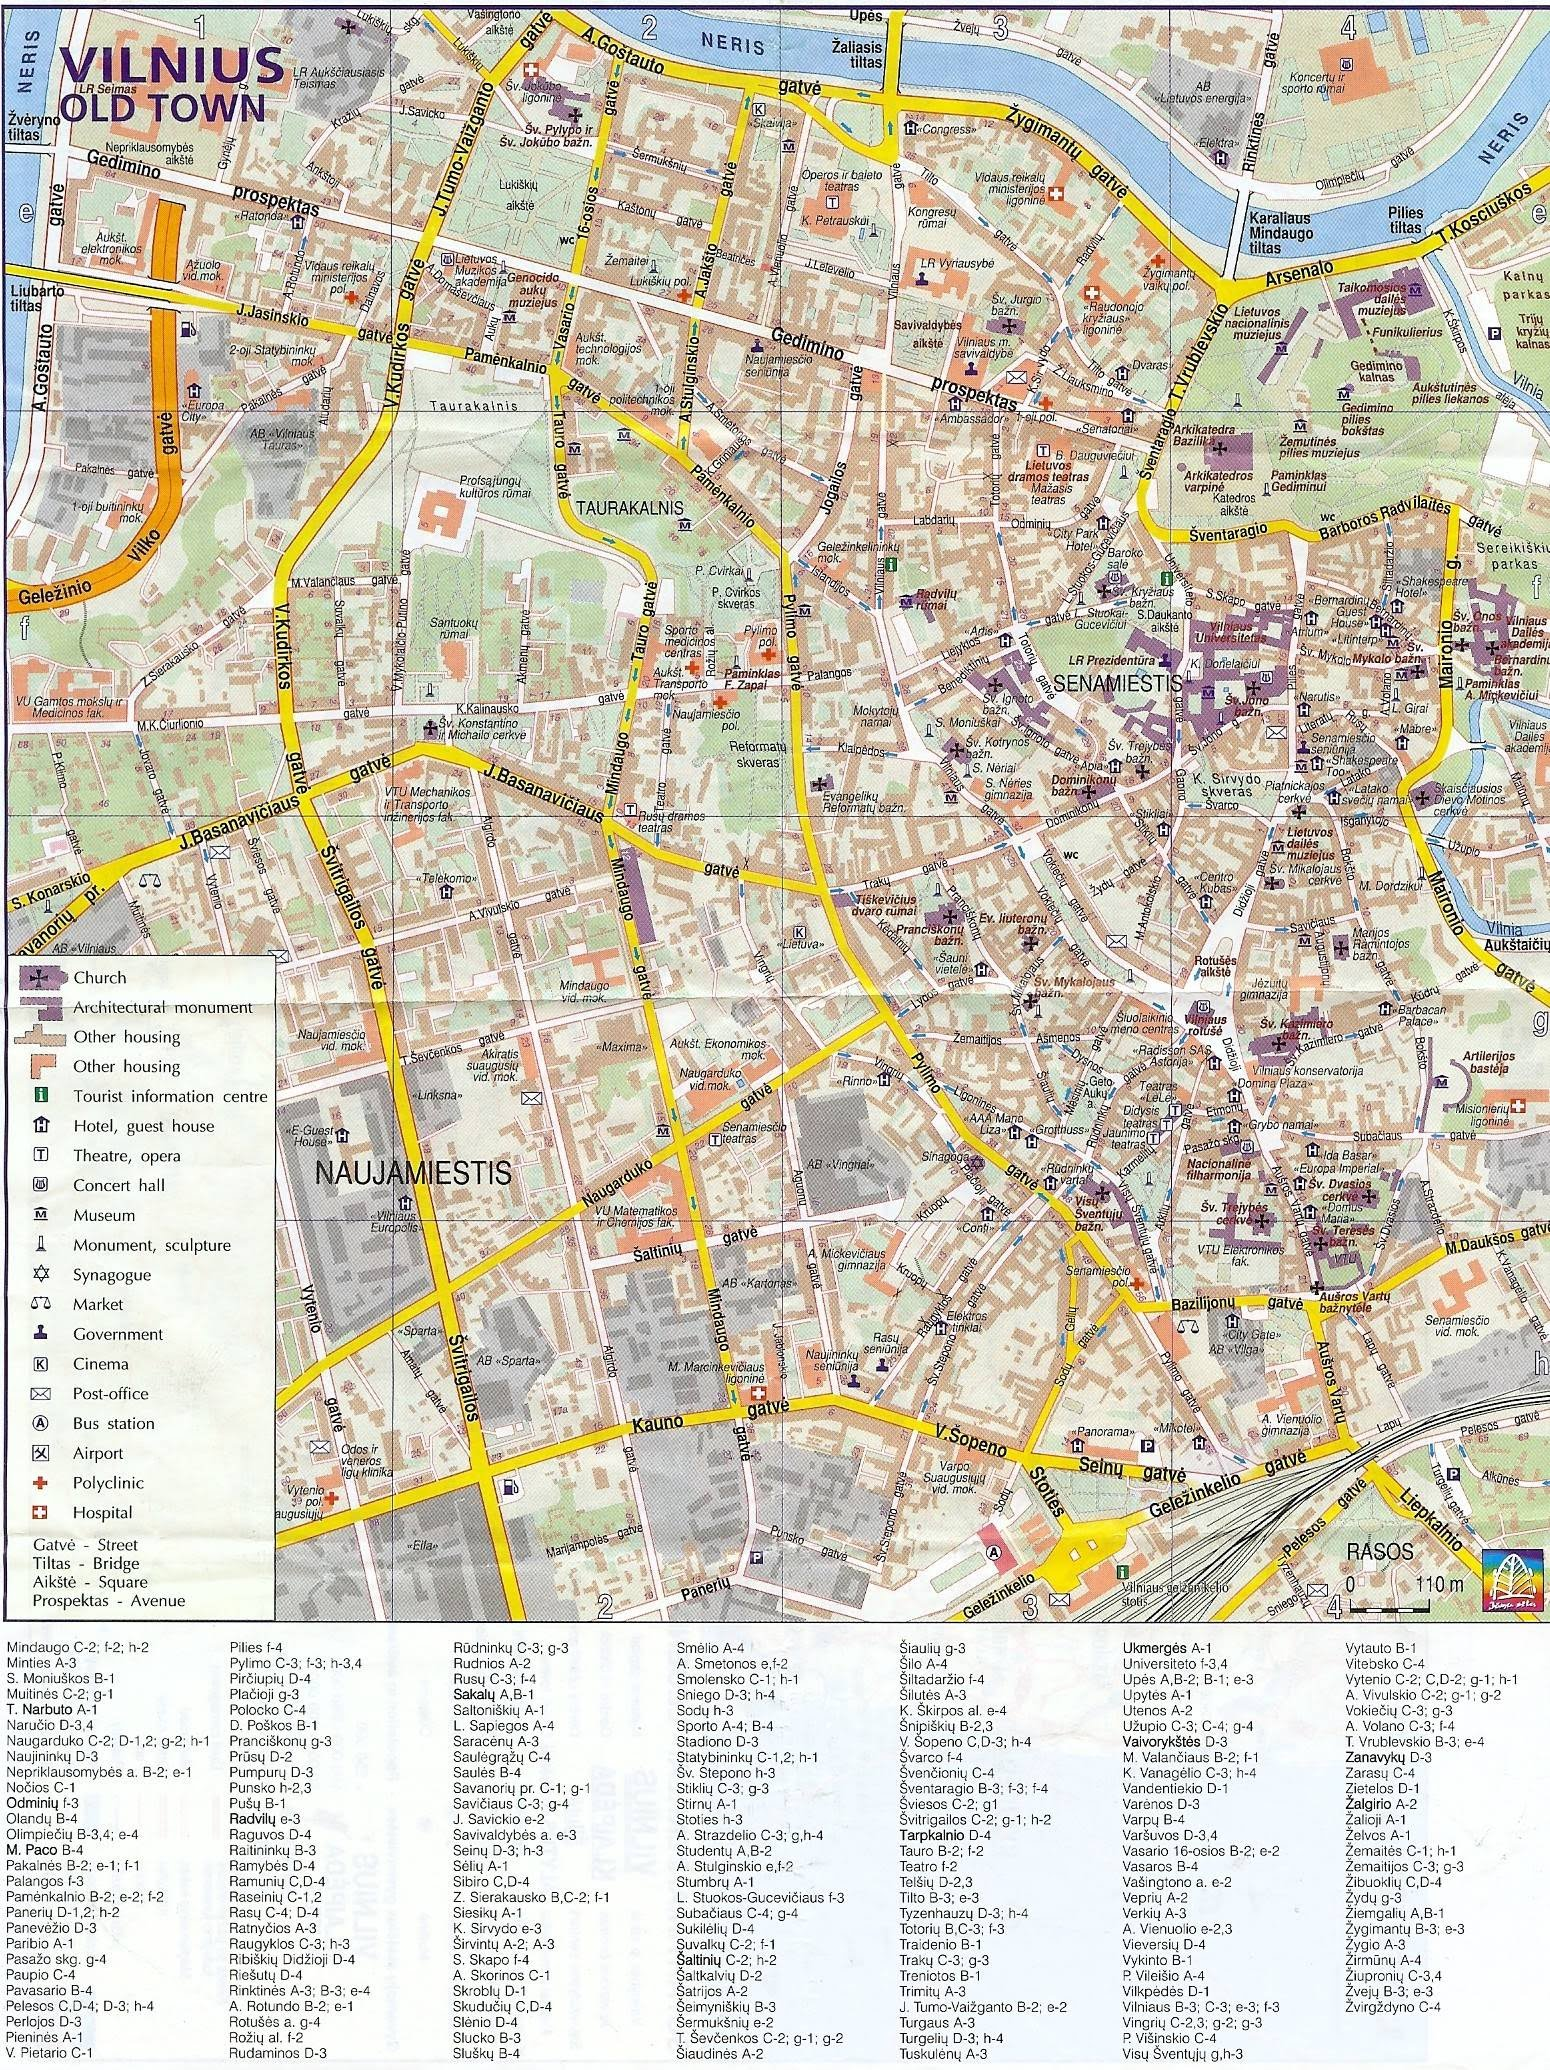 lithuania Old Town Vilnius Map on map old town copenhagen, map chicago old town, map prague old town, map bucharest old town, map salzburg old town,